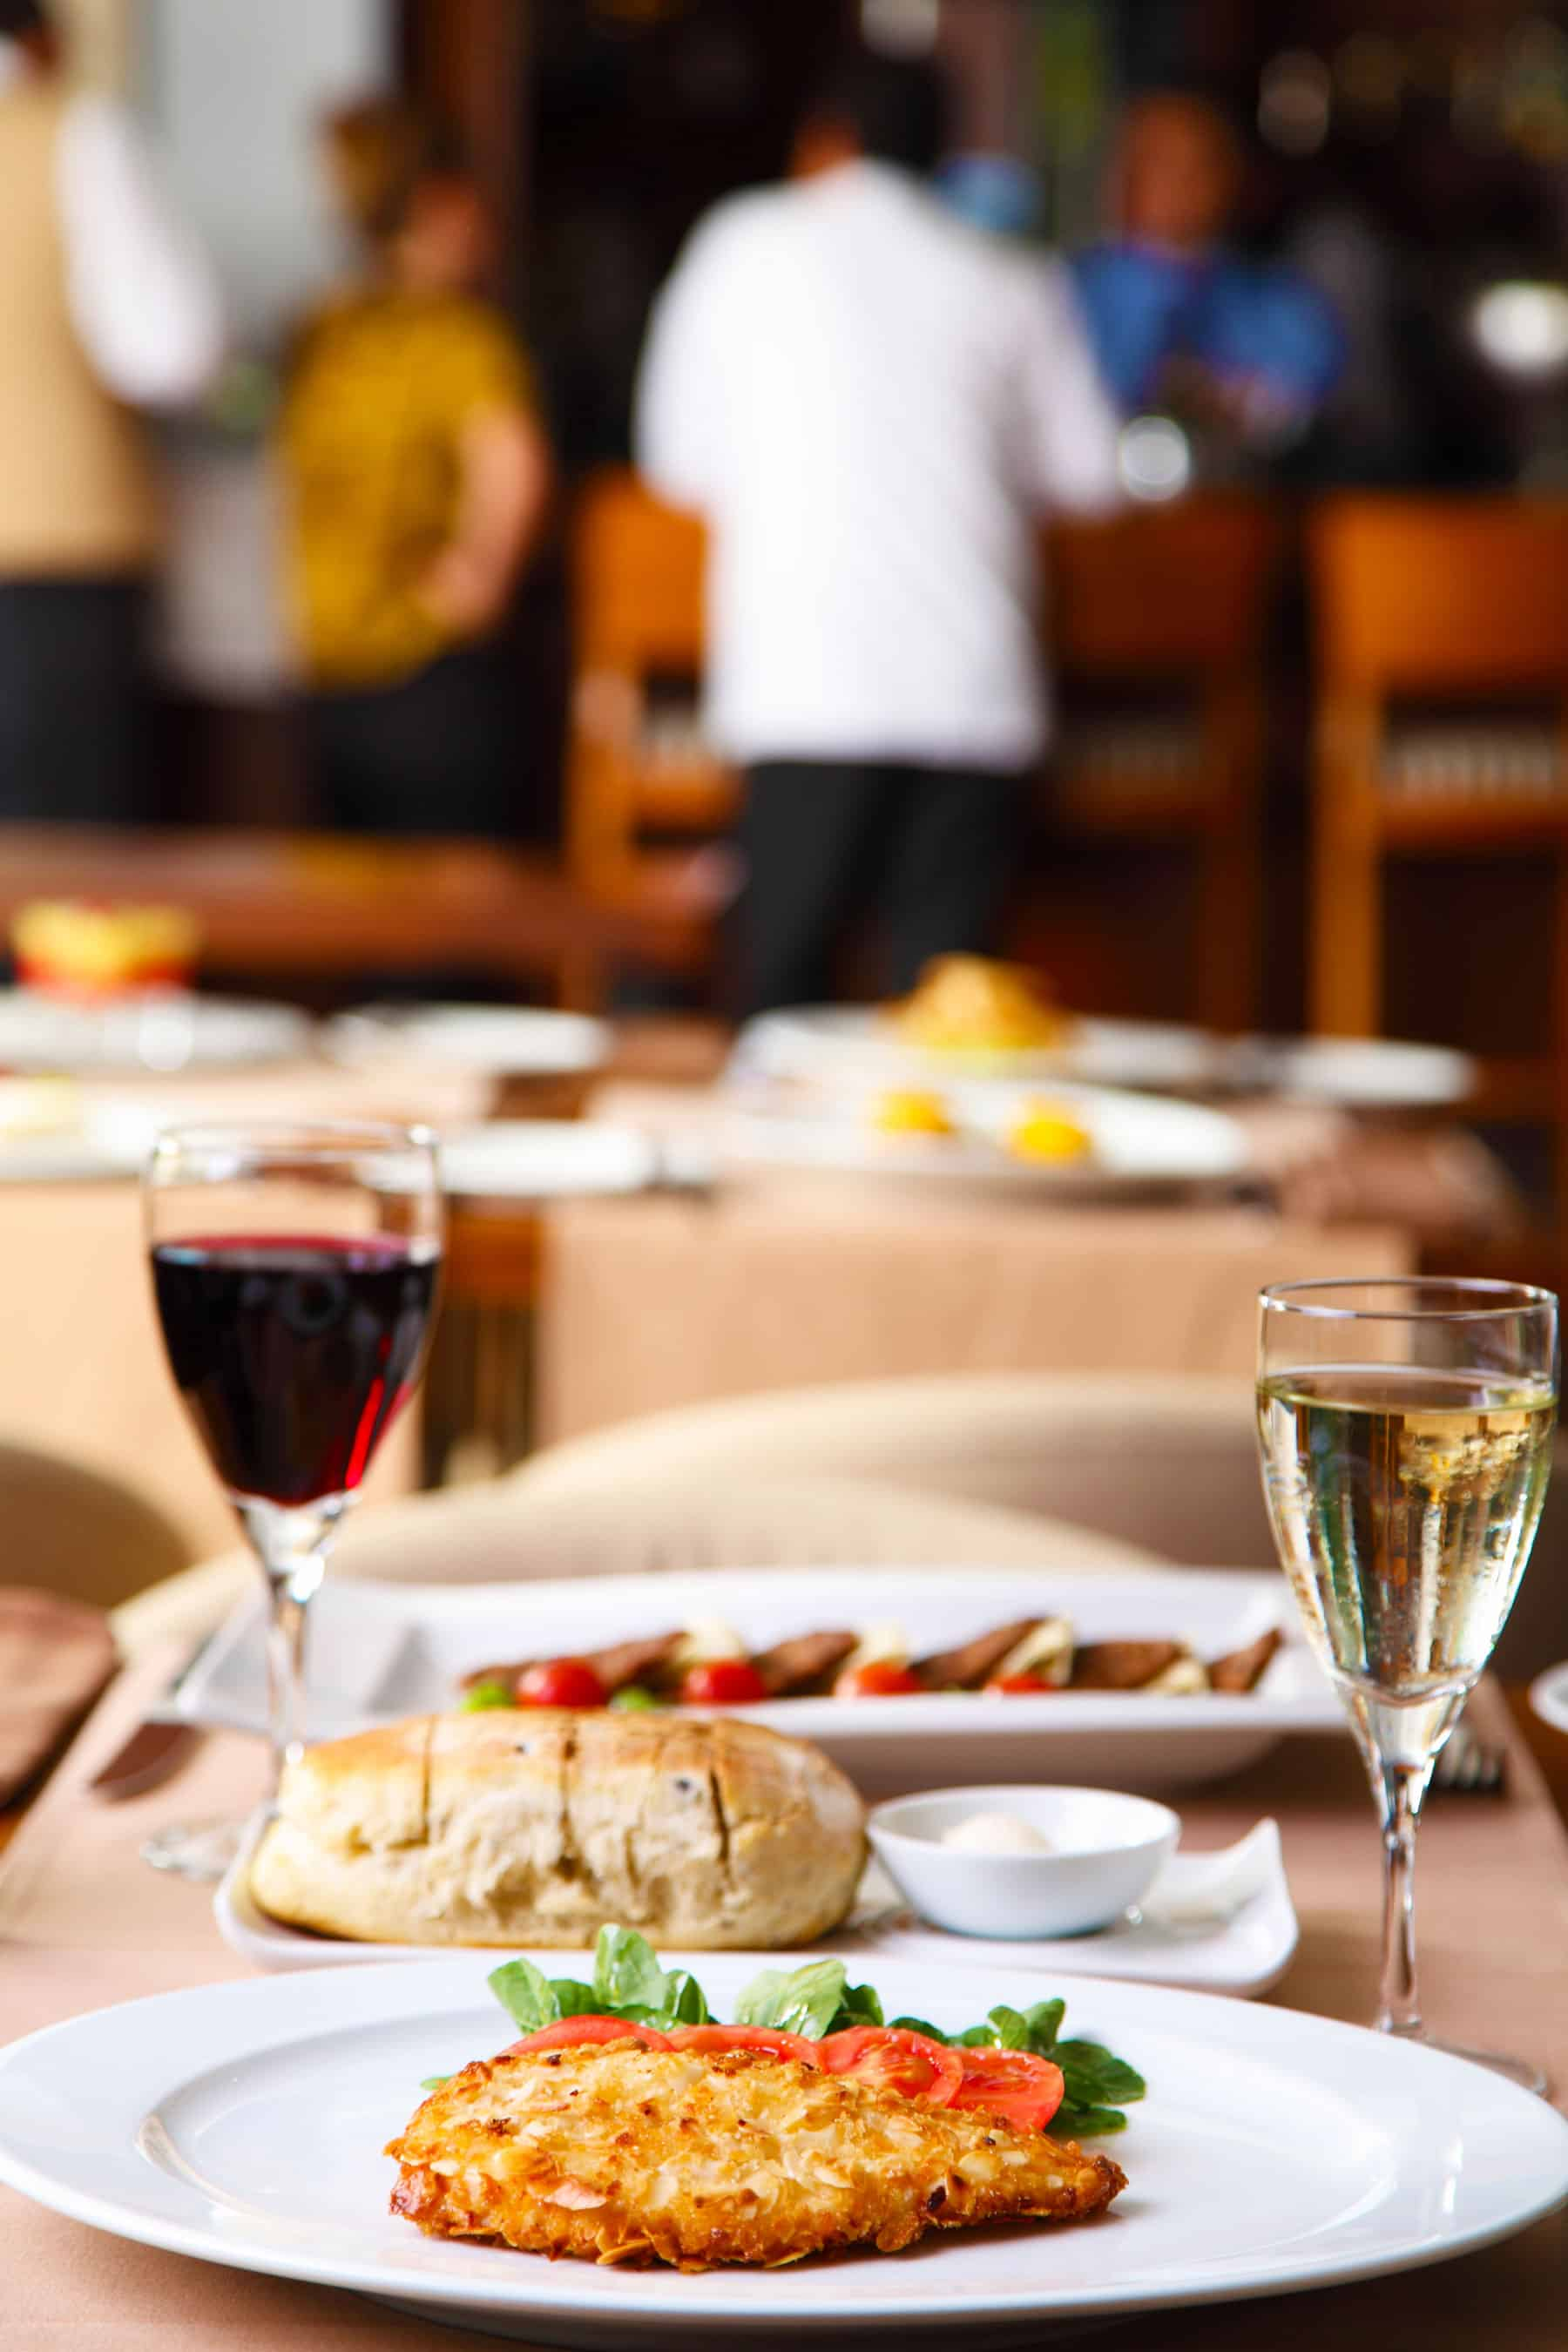 Tips For How to Save Money On Eating Out - Restaurant Photo with food and wine